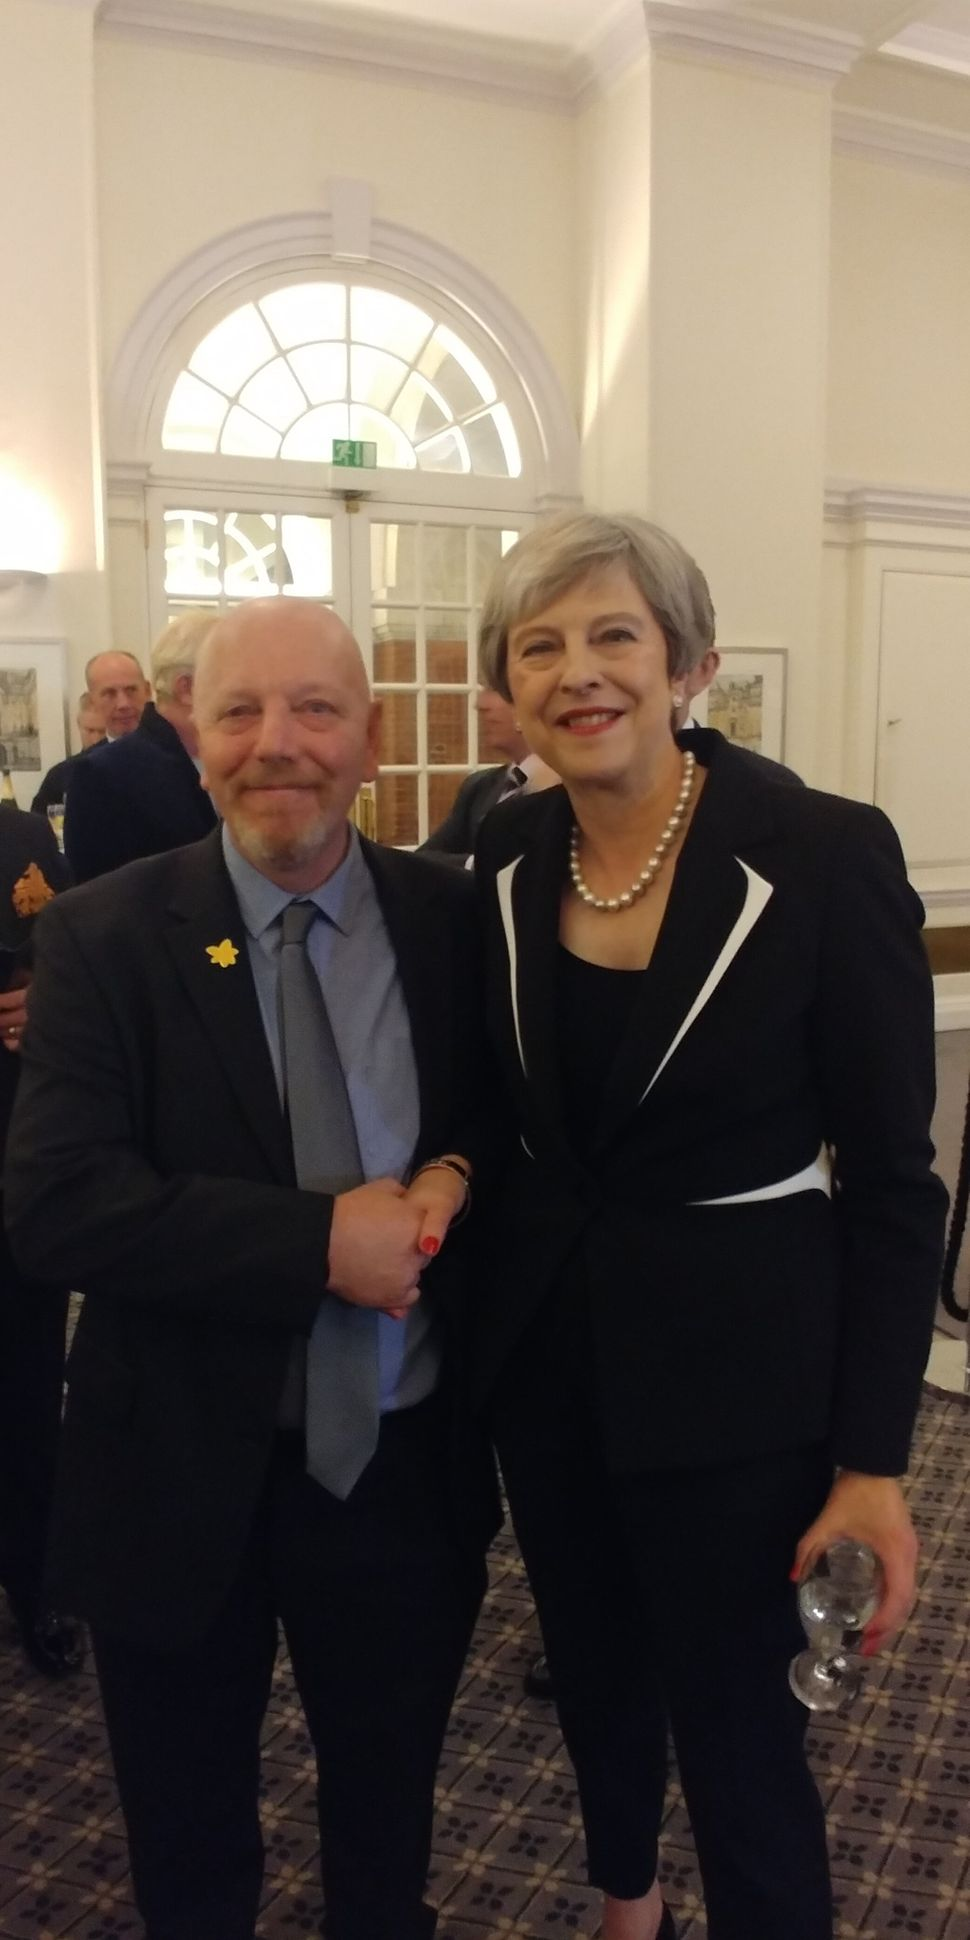 Mark has met prime minister Theresa May through his charity